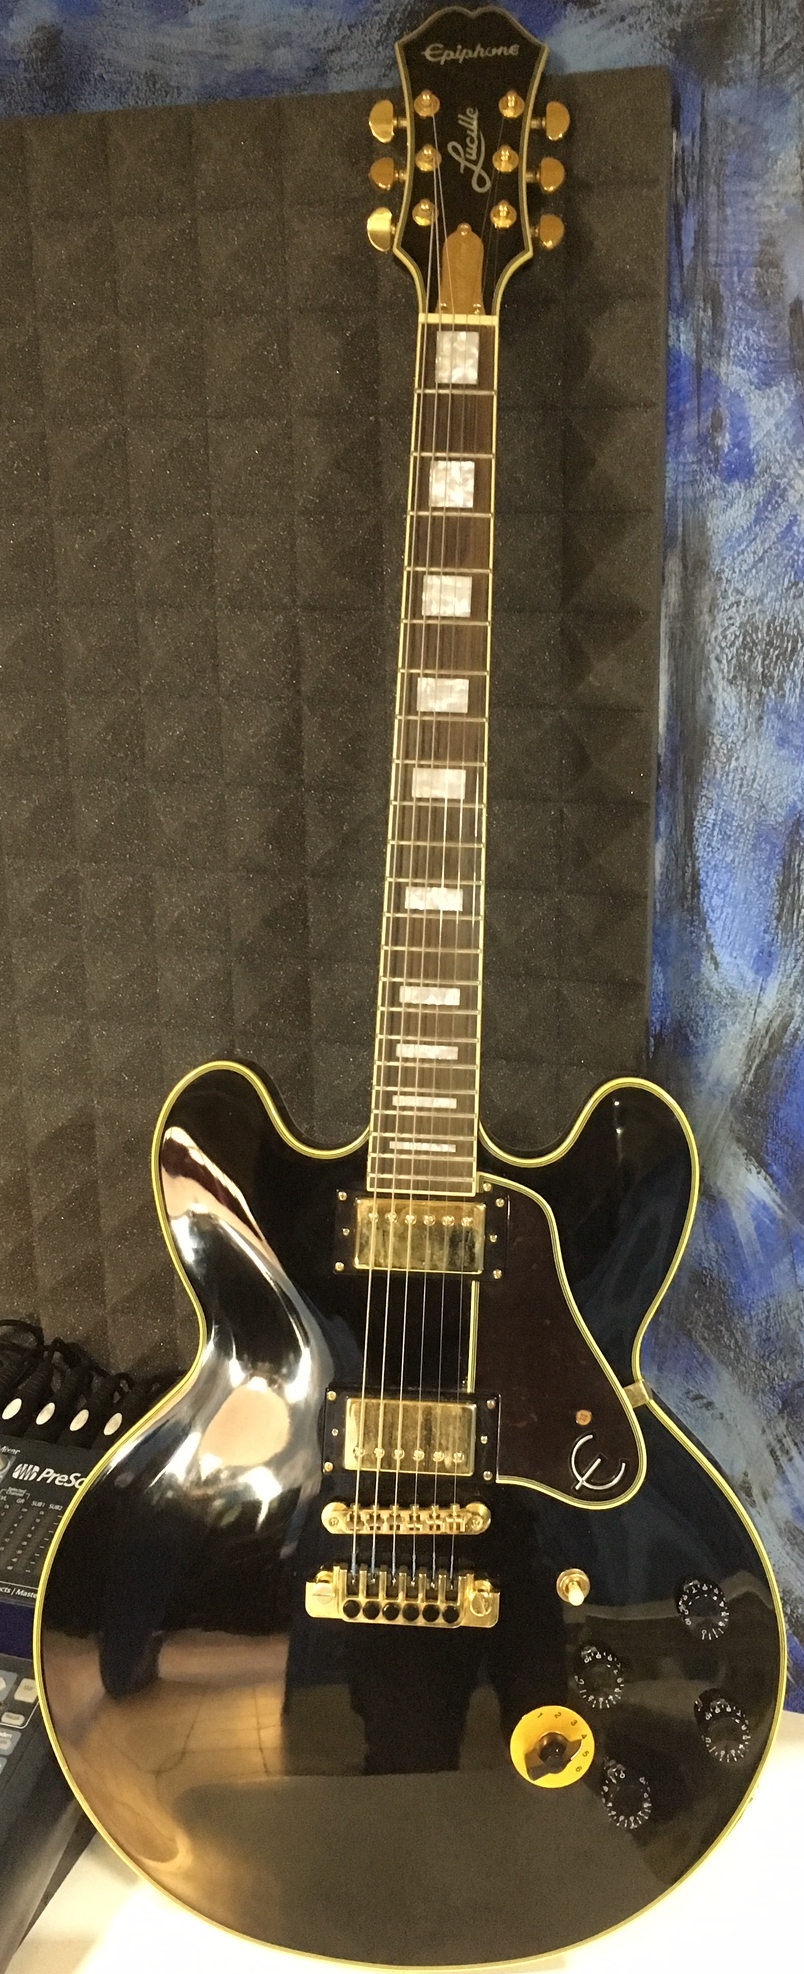 Epiphone Les Paul B.B.King Lucille black beauty USATA